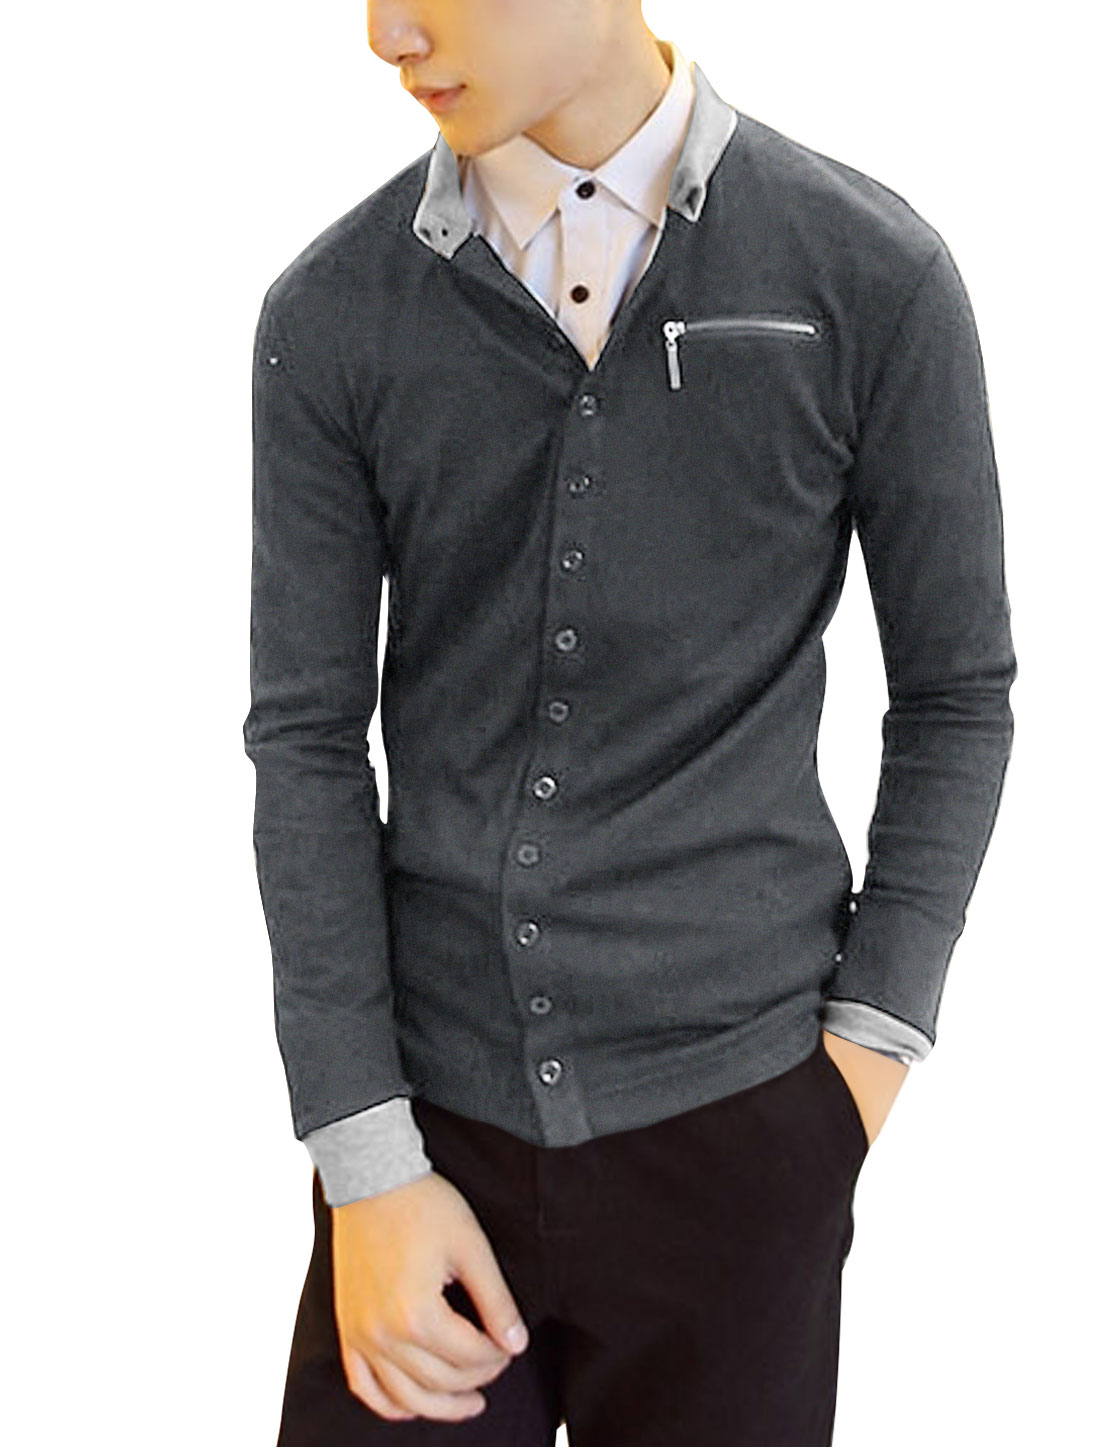 Stylish Dark Gray Button-Front Casual Cardigan Shirt for Man S